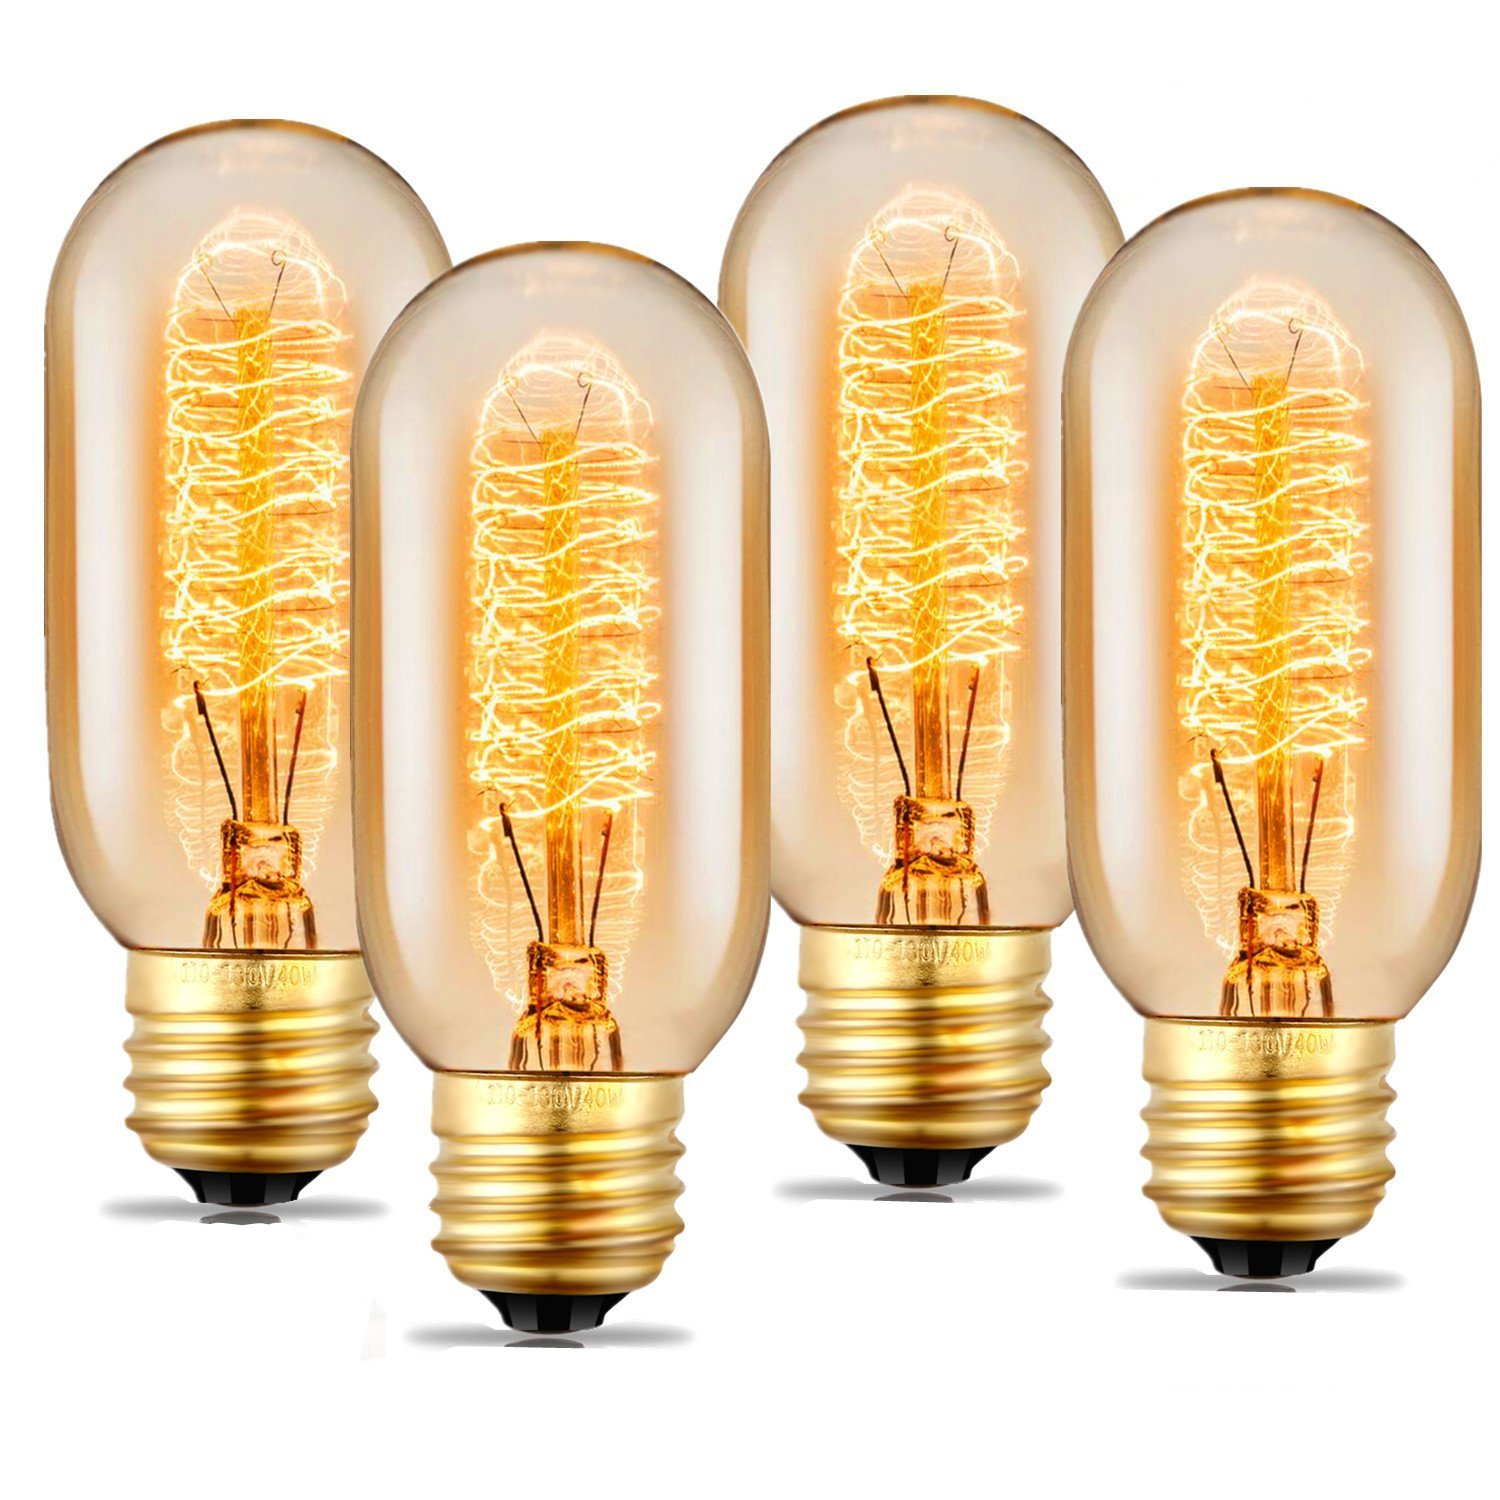 Edison Light Bulb,4-Pack SooFoo 40W Vintage Antique Style Incandescent Light Bulb, E26 E27 Base,110V,T45 Tubular Amber Clear Glass, Warm white,For Home Light Fixtures and Decorative, Dimmable